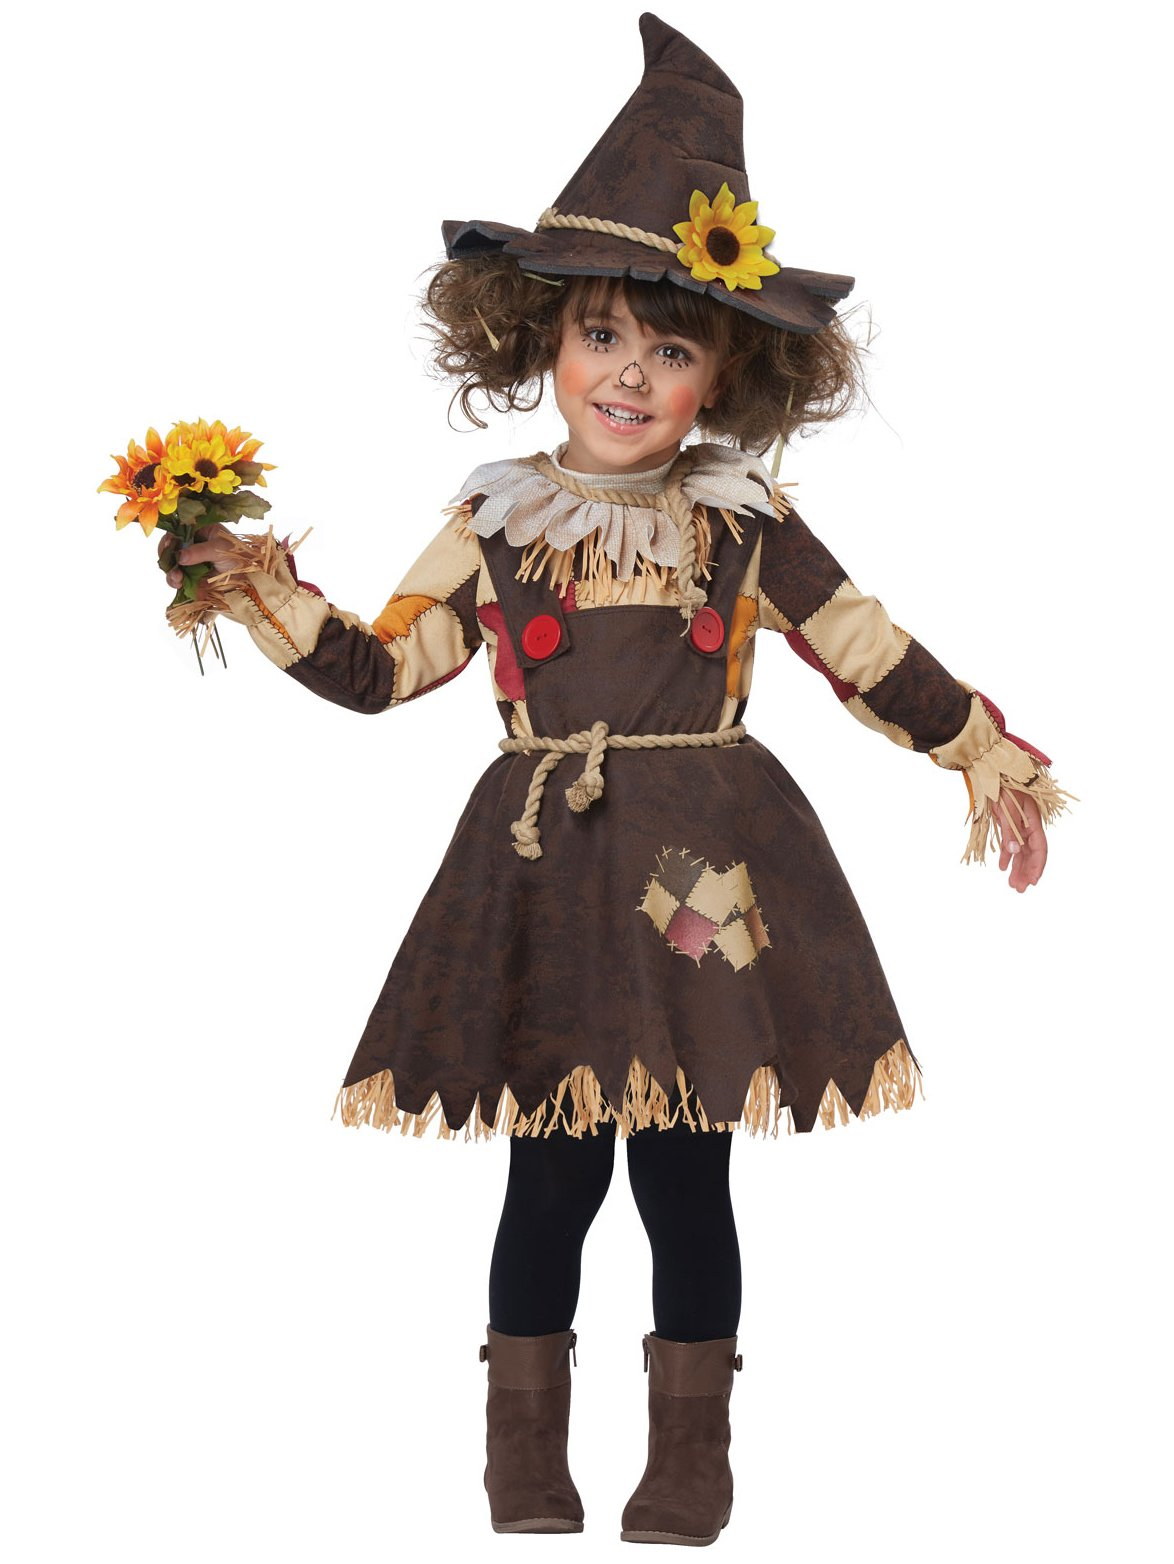 California Costumes Pumpkin Patch Scarecrow Toddler Costume, Brown, TD (3-4) by California Costumes (Image #1)